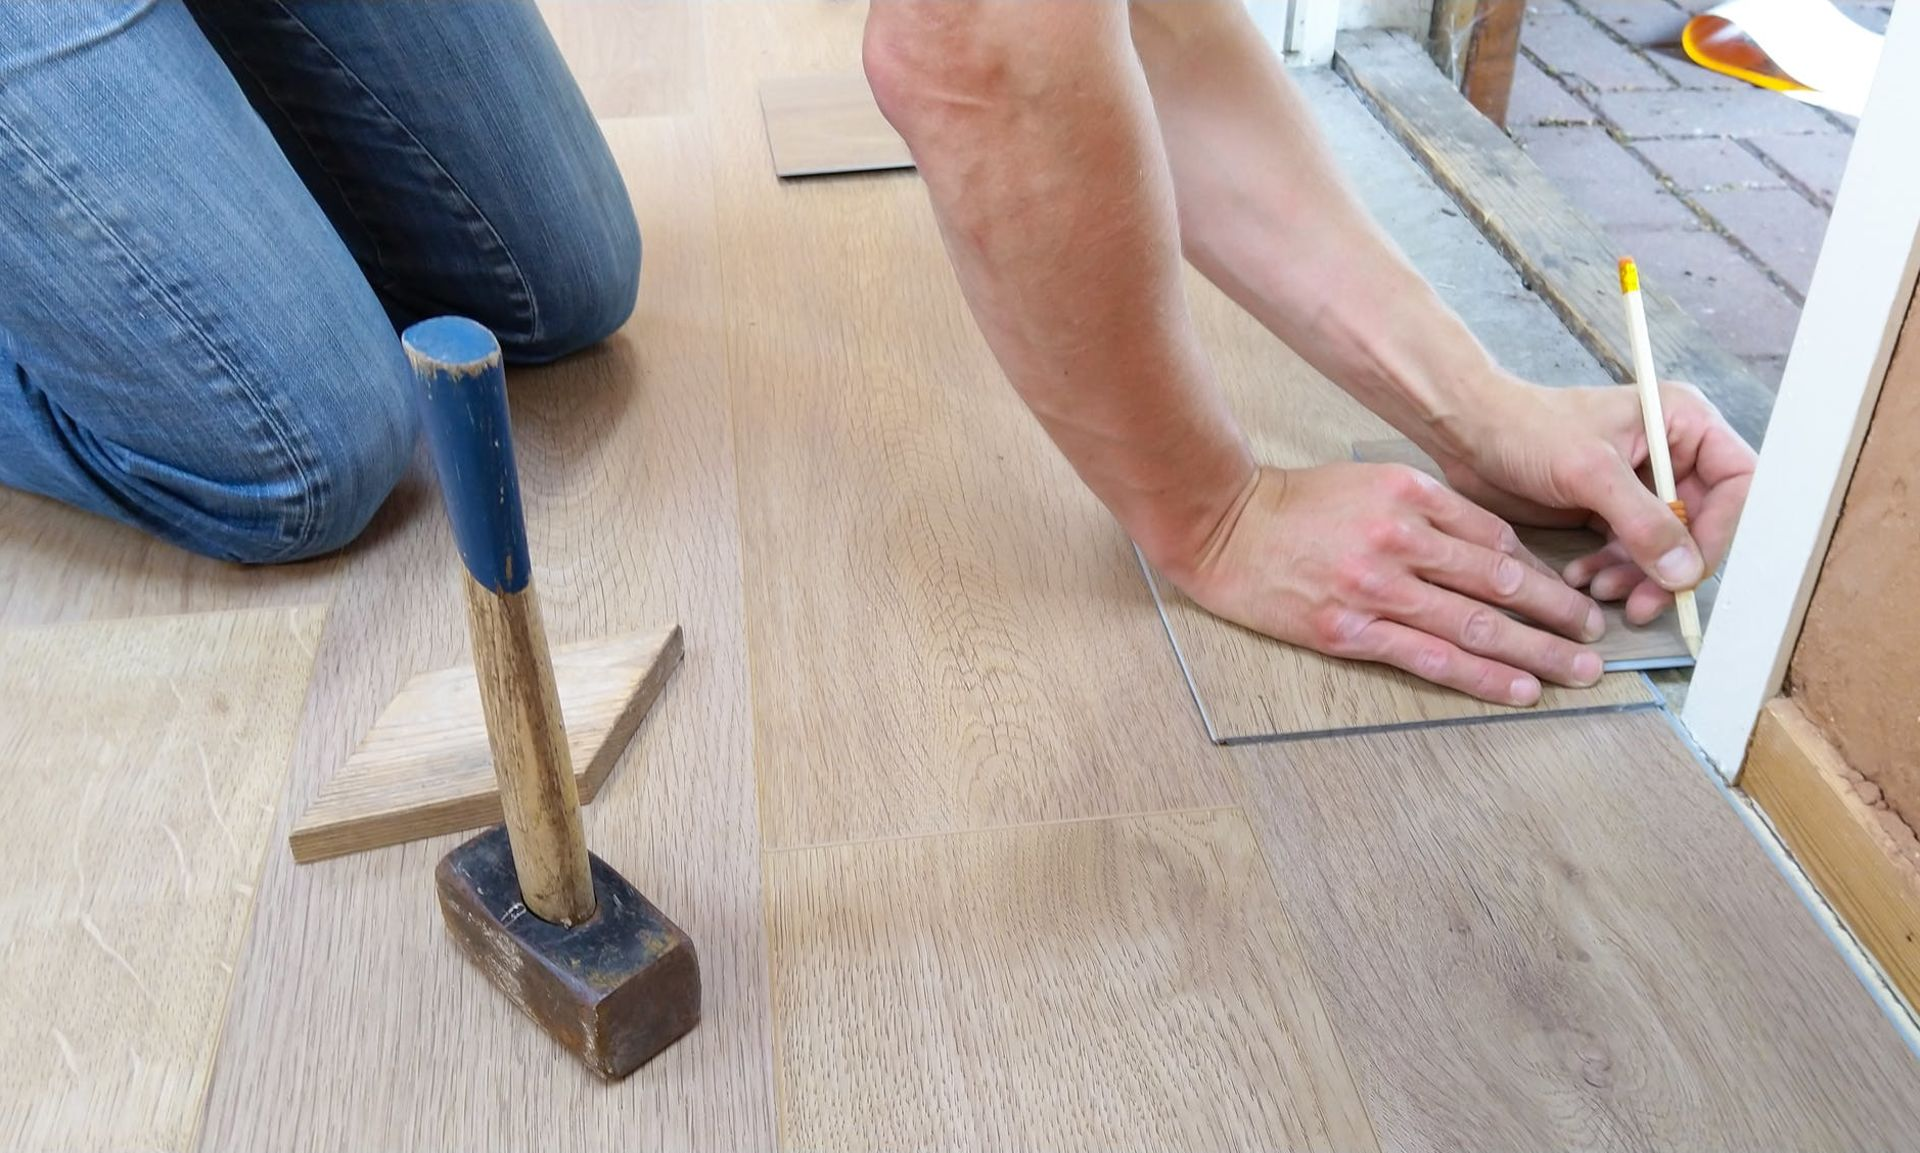 Repairs to Make Before You List Your Home